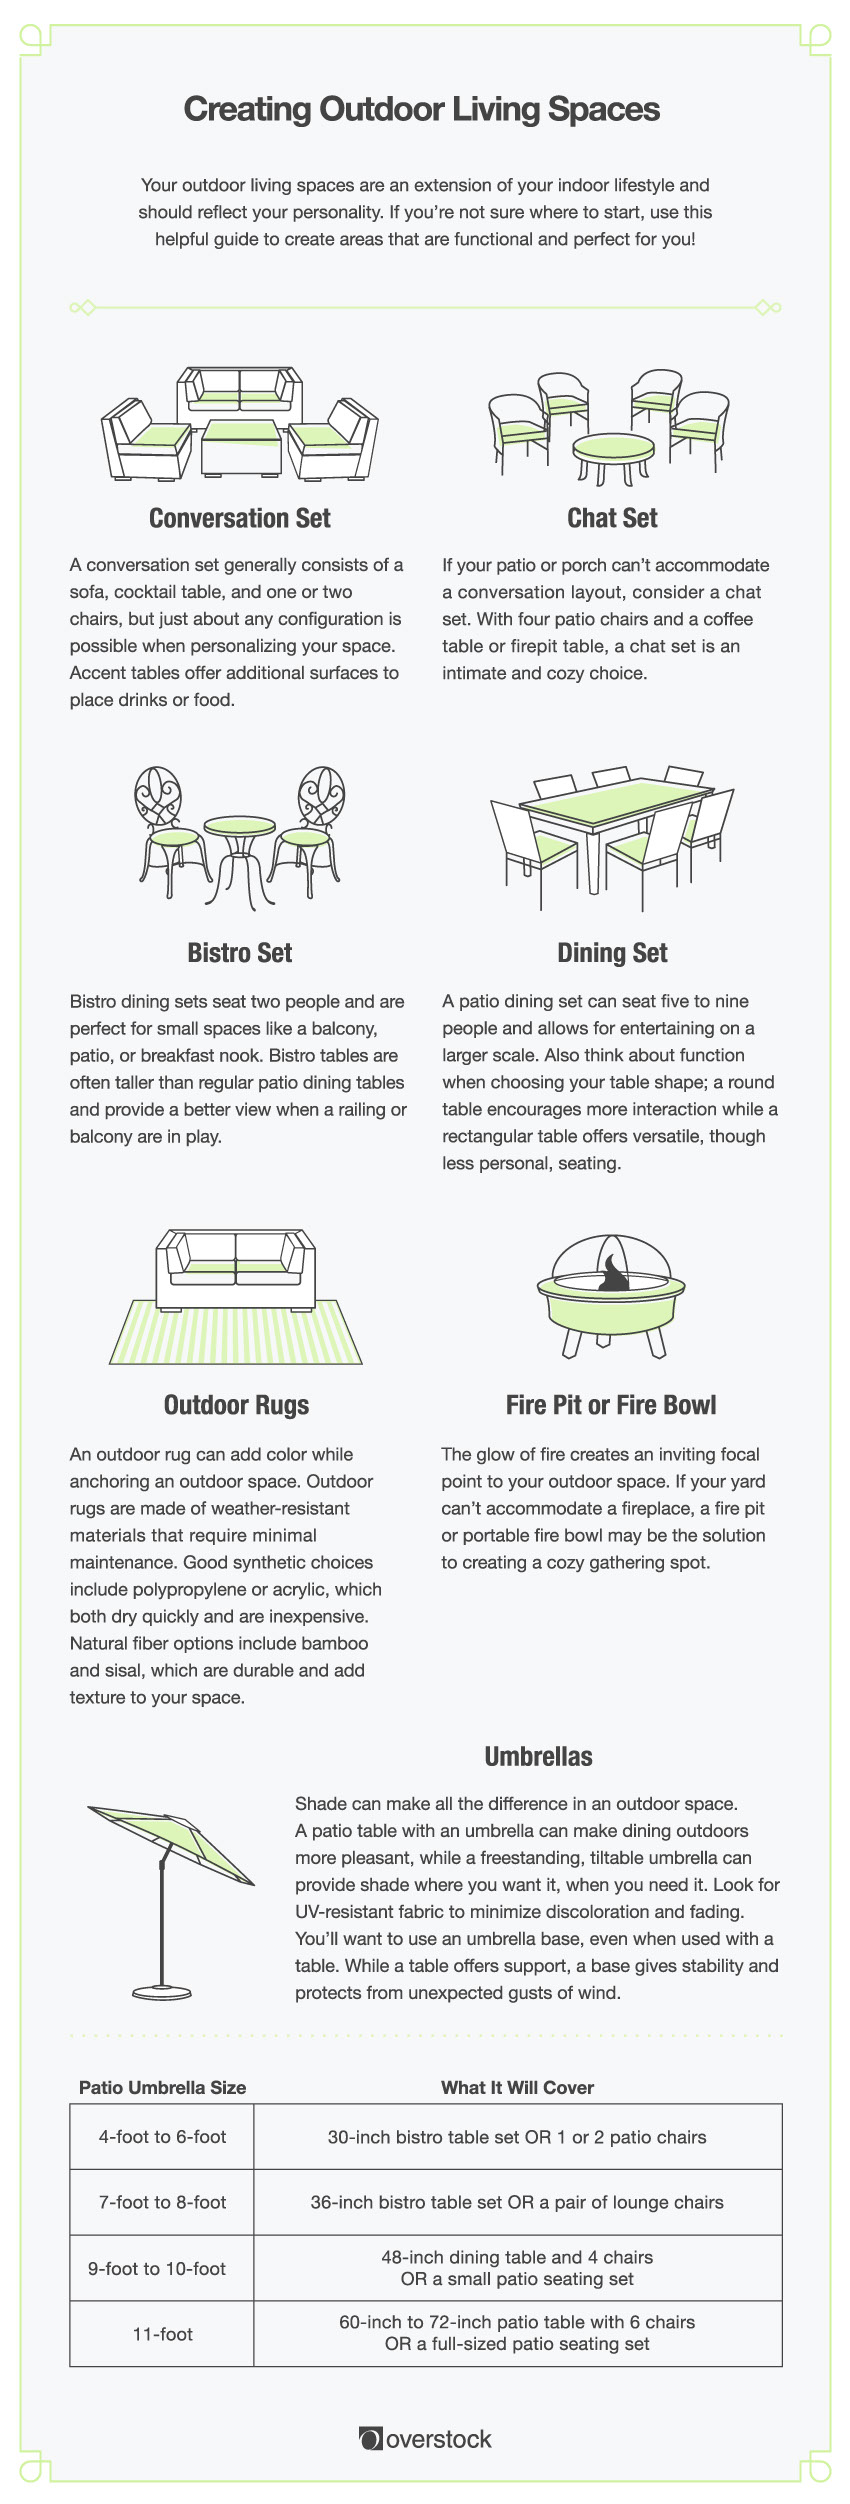 Creating Outdoor Living Spaces: Your outdoor living spaces are an extension of your indoor lifestyle and should reflect your personality. Infographic.